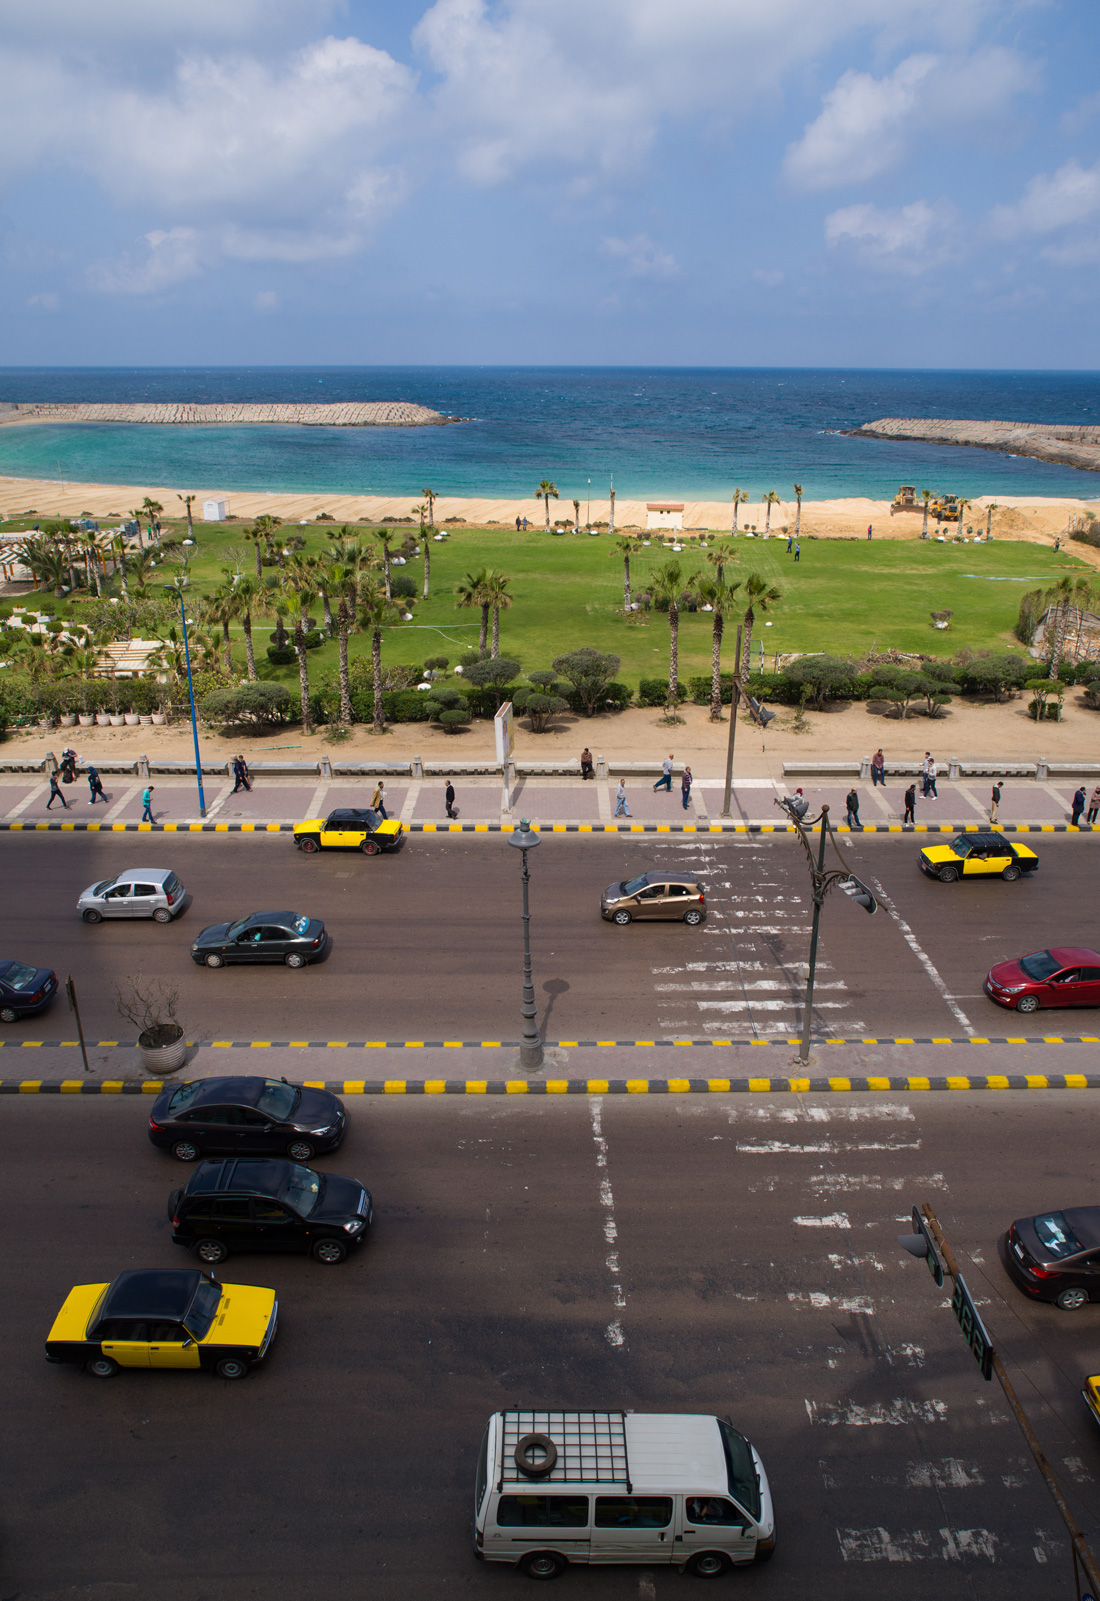 A view from an upscale hotel, across the corniche road to the private beach and the sea beyond.